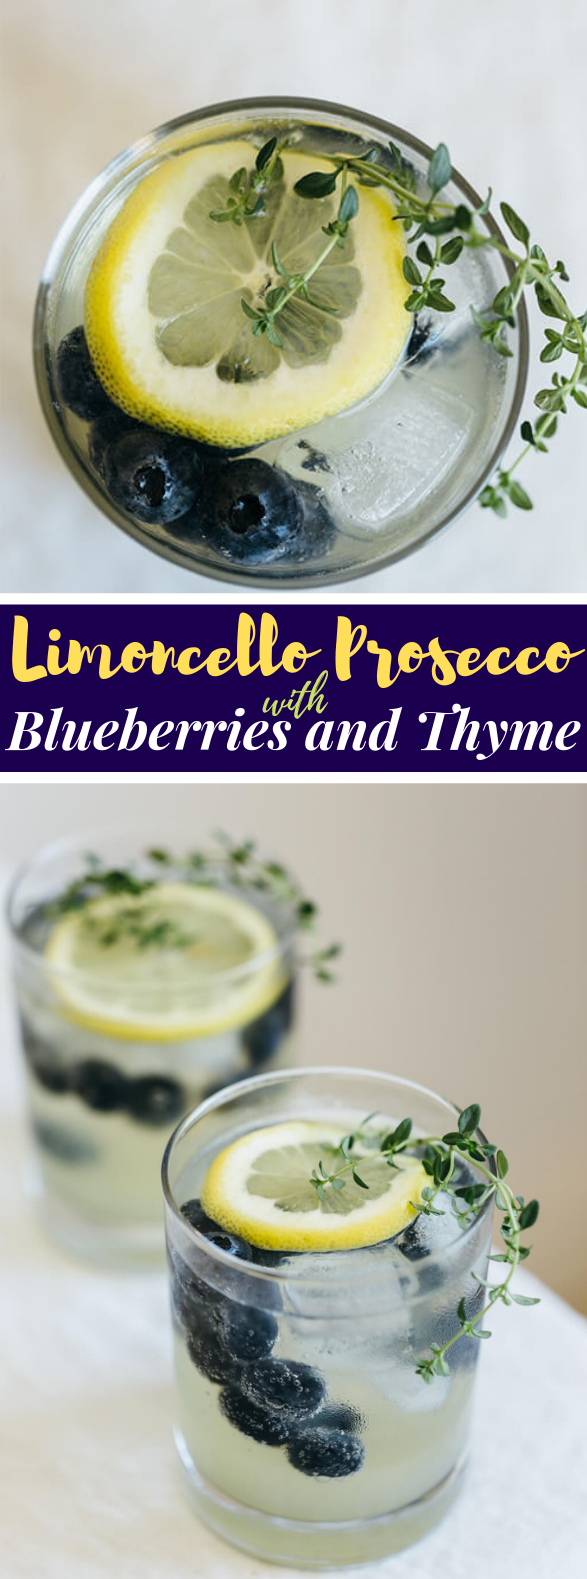 LIMONCELLO PROSECCO WITH BLUEBERRIES AND THYME #drink #cocktail